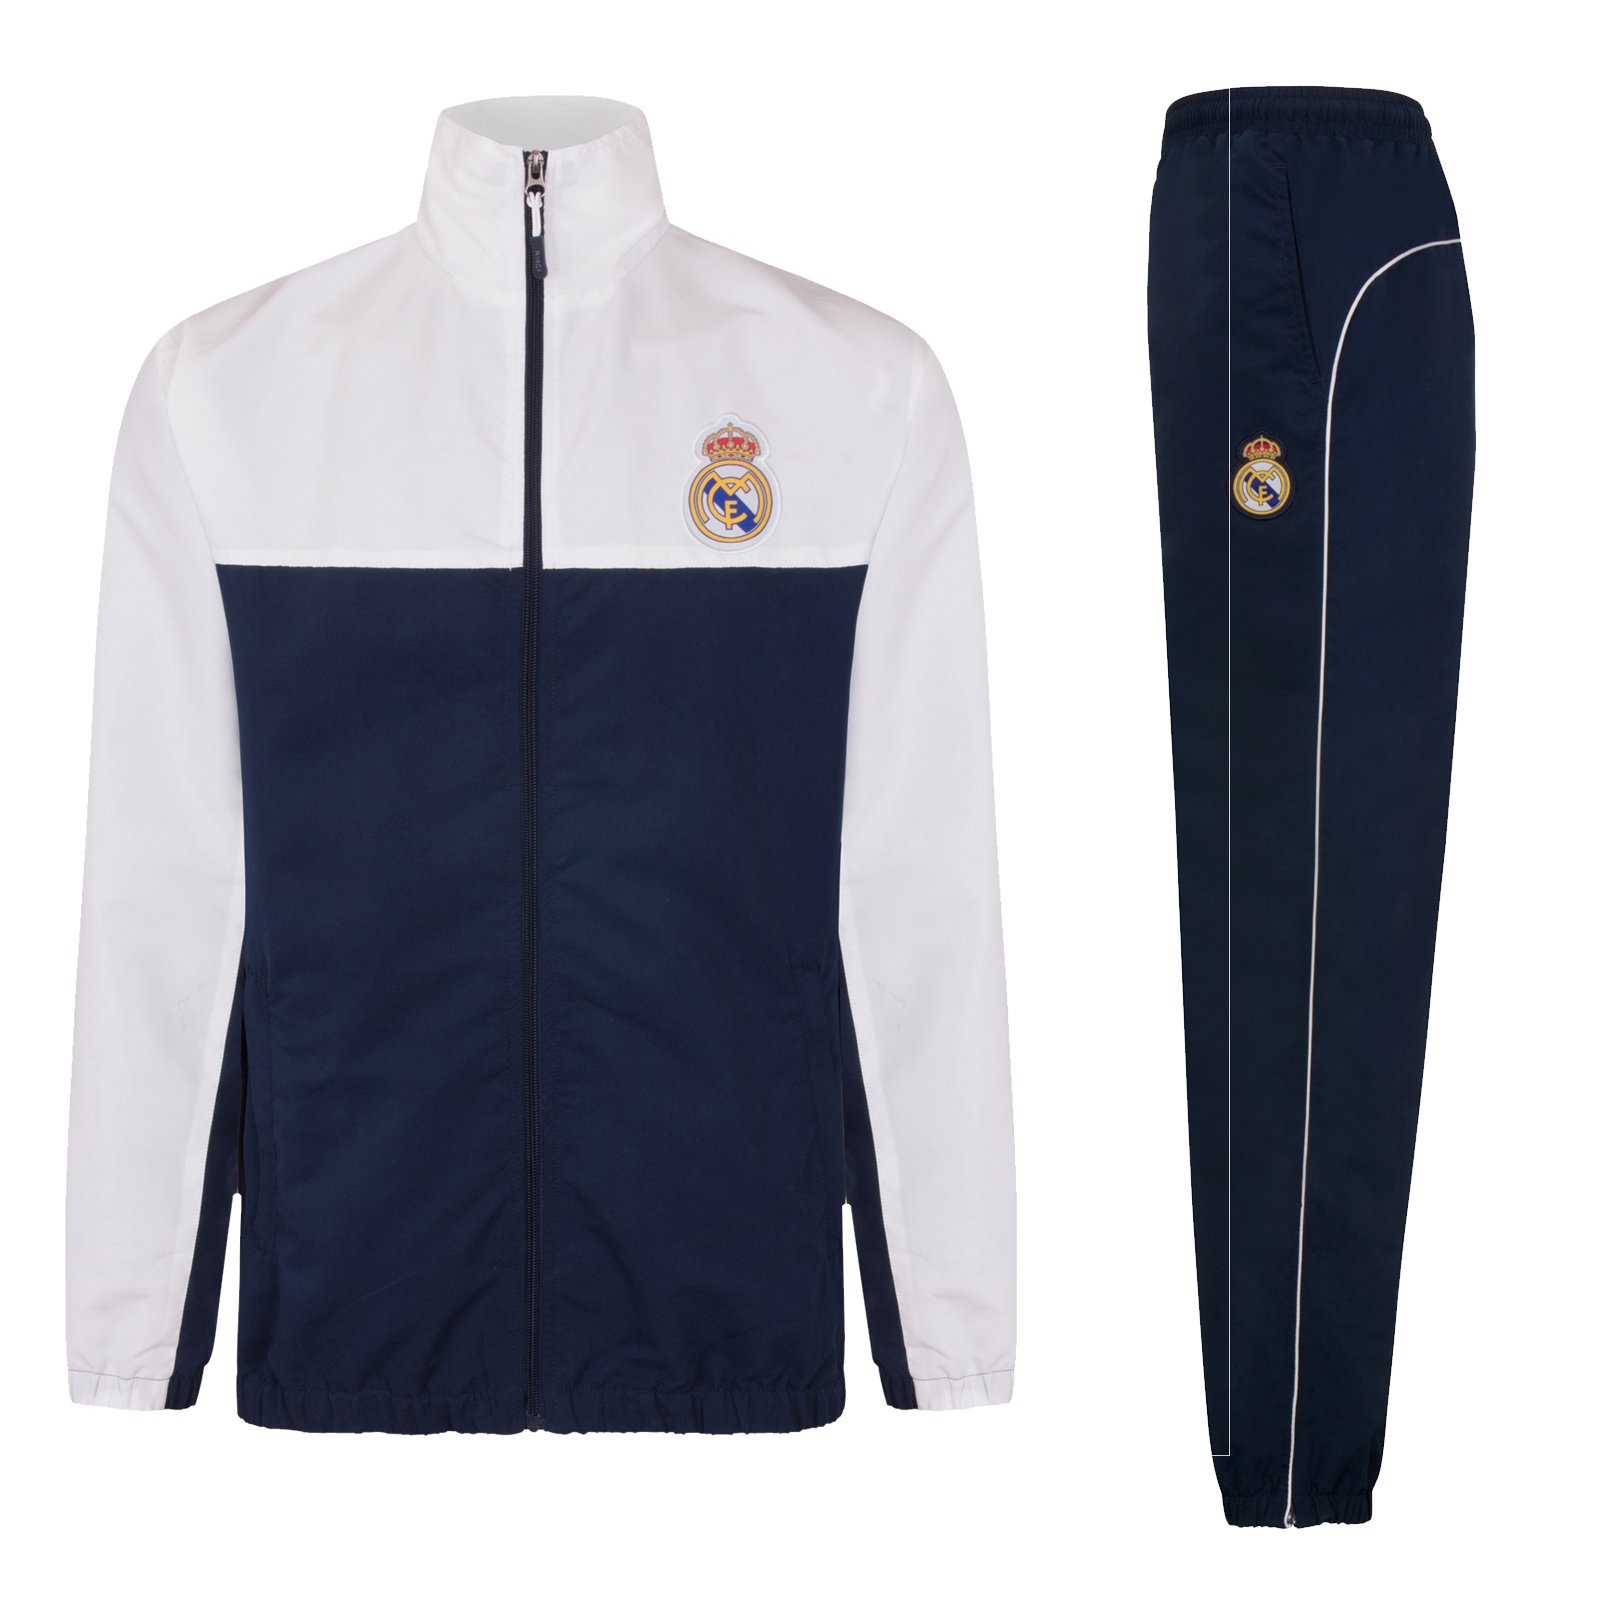 Real Madrid Official Football Gift Boys Jacket & Pants Tracksuit Set 8 Years Navy Blue